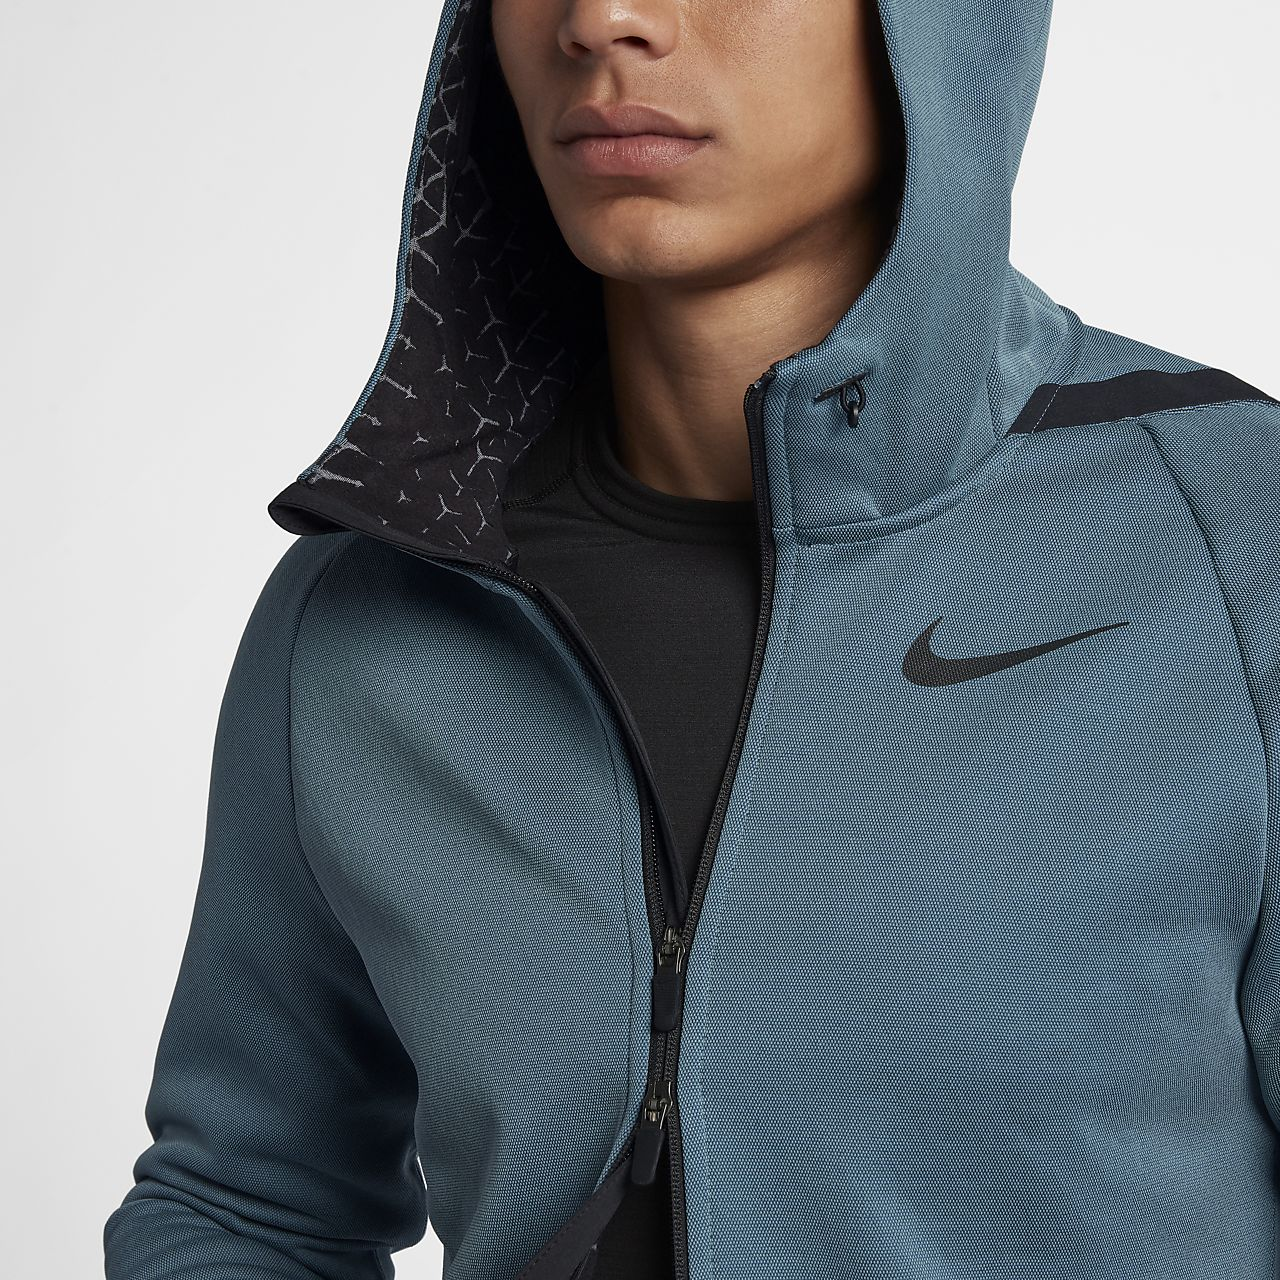 b37c5f1f21 Nike Therma Sphere Men's Training Jacket